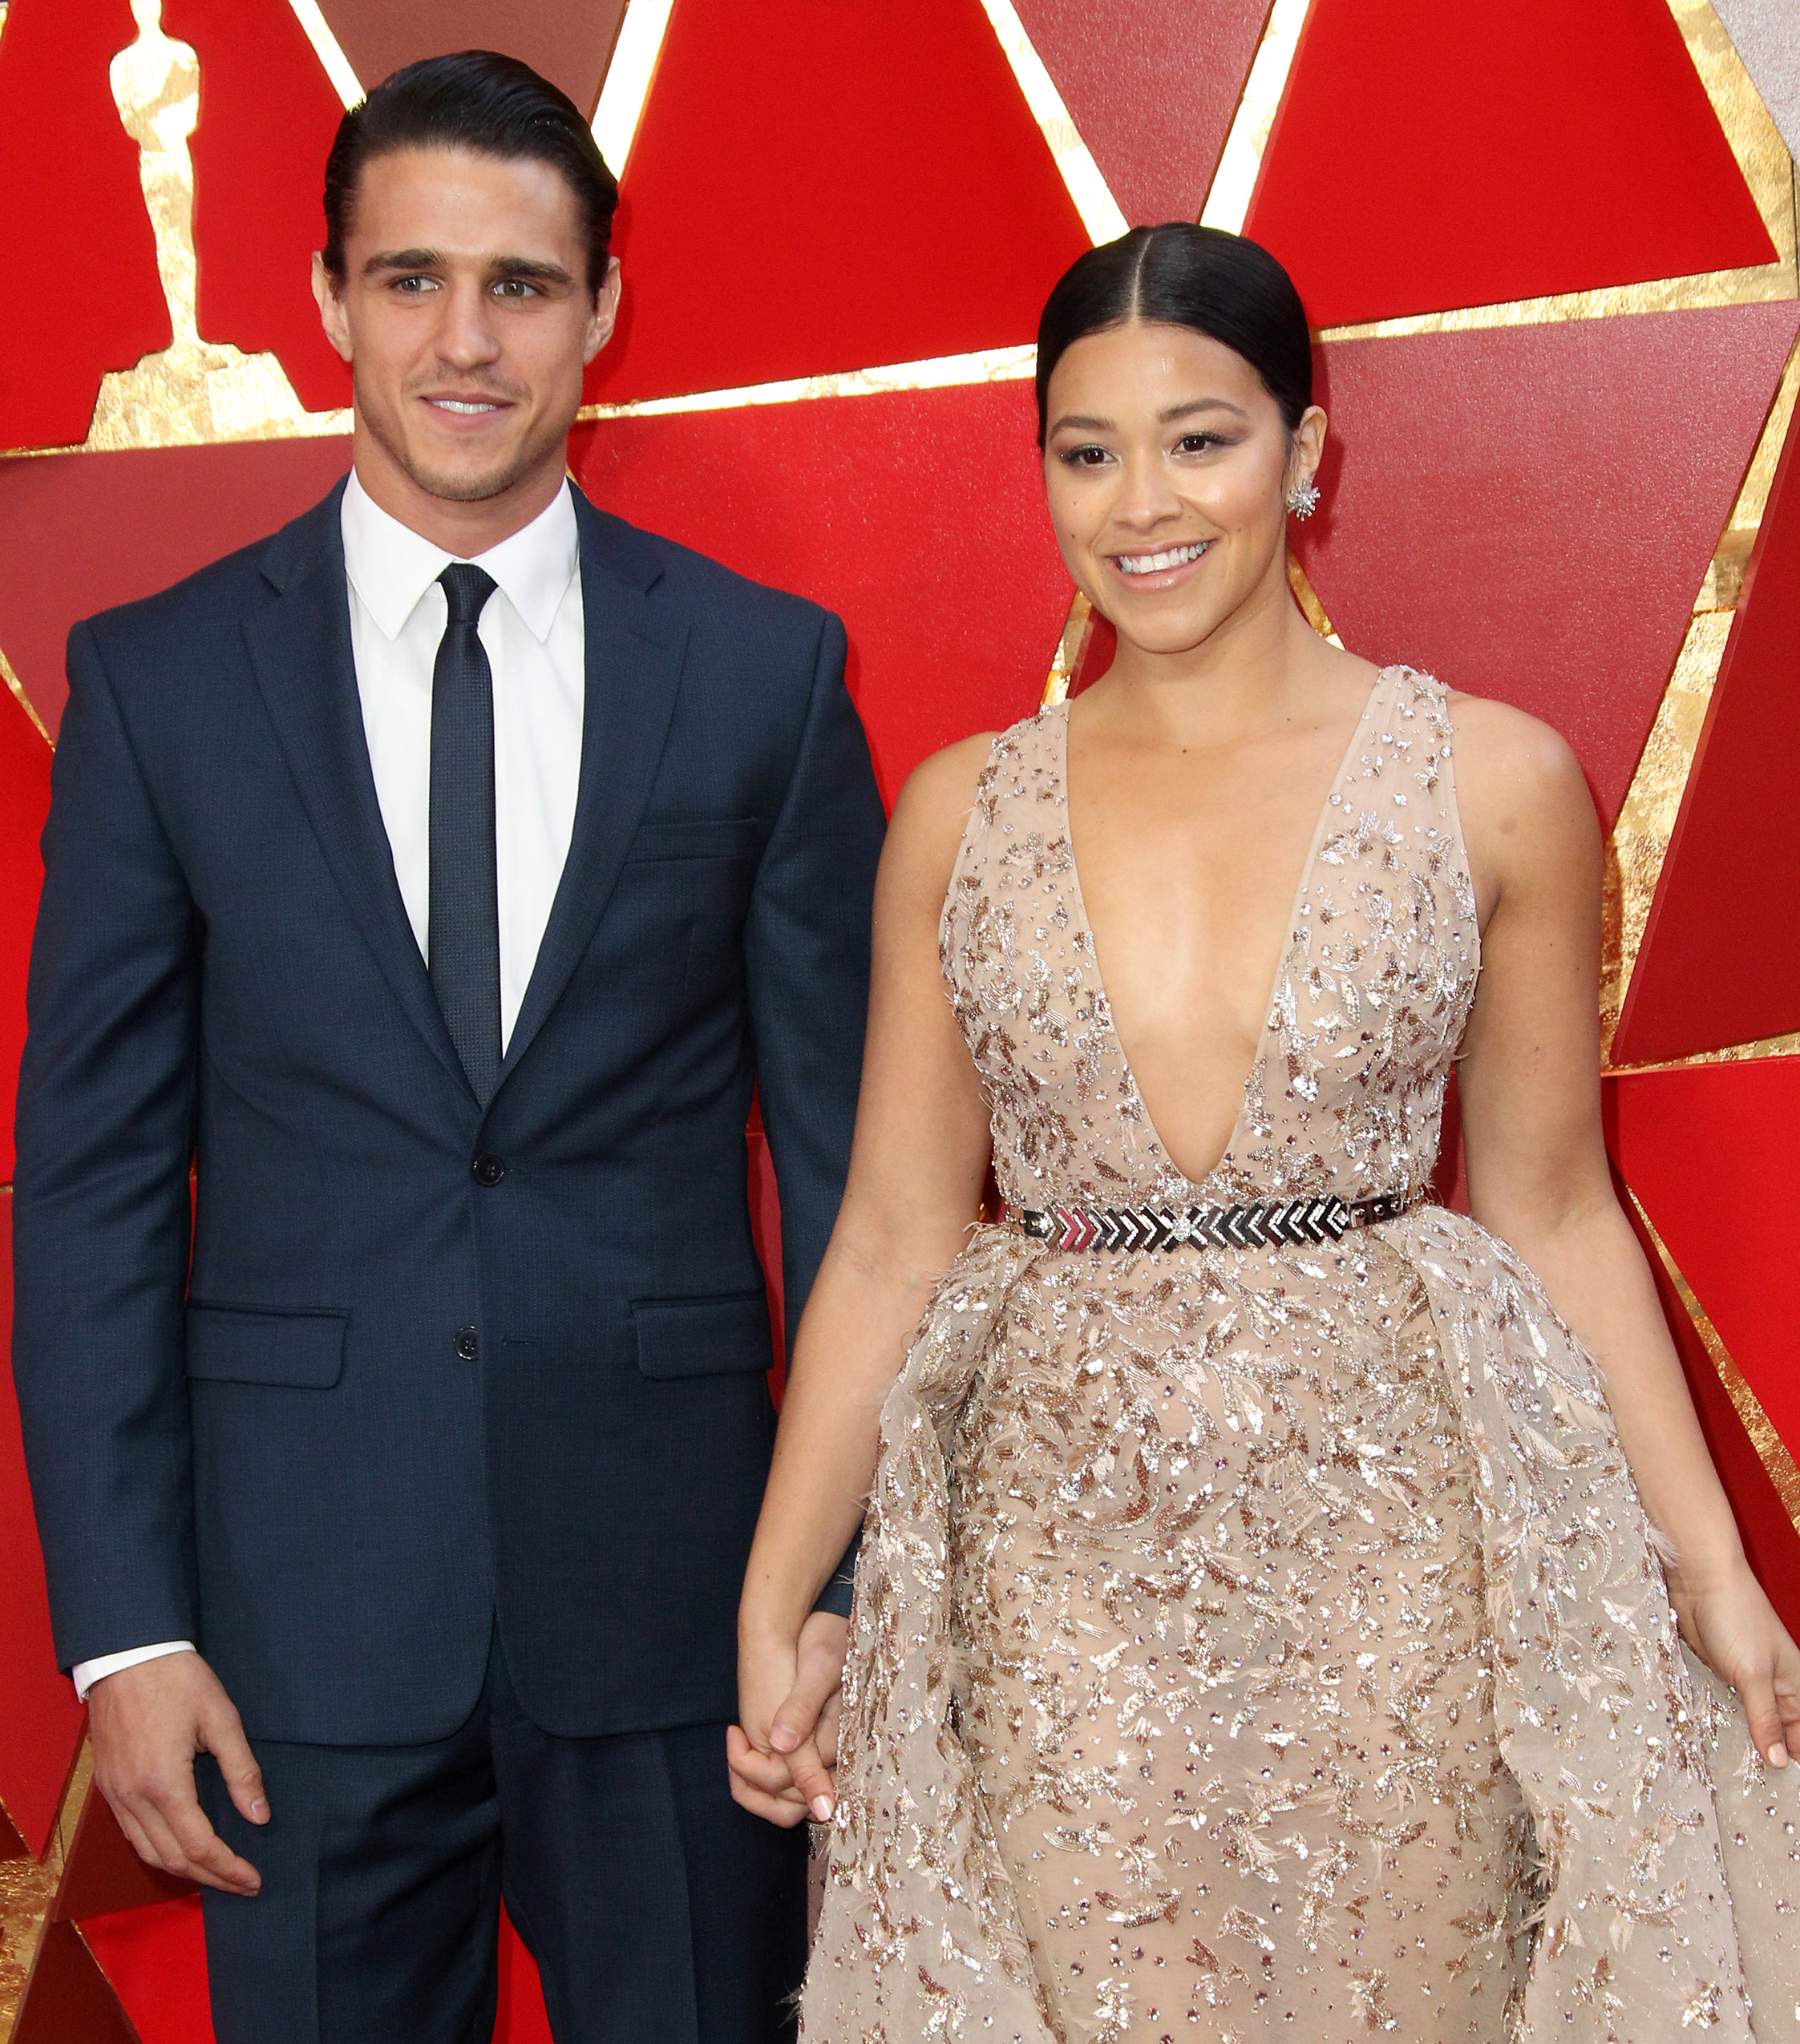 Gina Rodriguez and Joe LoCicero{&nbsp;}arrive at the 90th Annual Academy Awards (Oscars) held at the Dolby Theater in Hollywood, California. (Image: Adriana M. Barraza/WENN.com) <p></p>